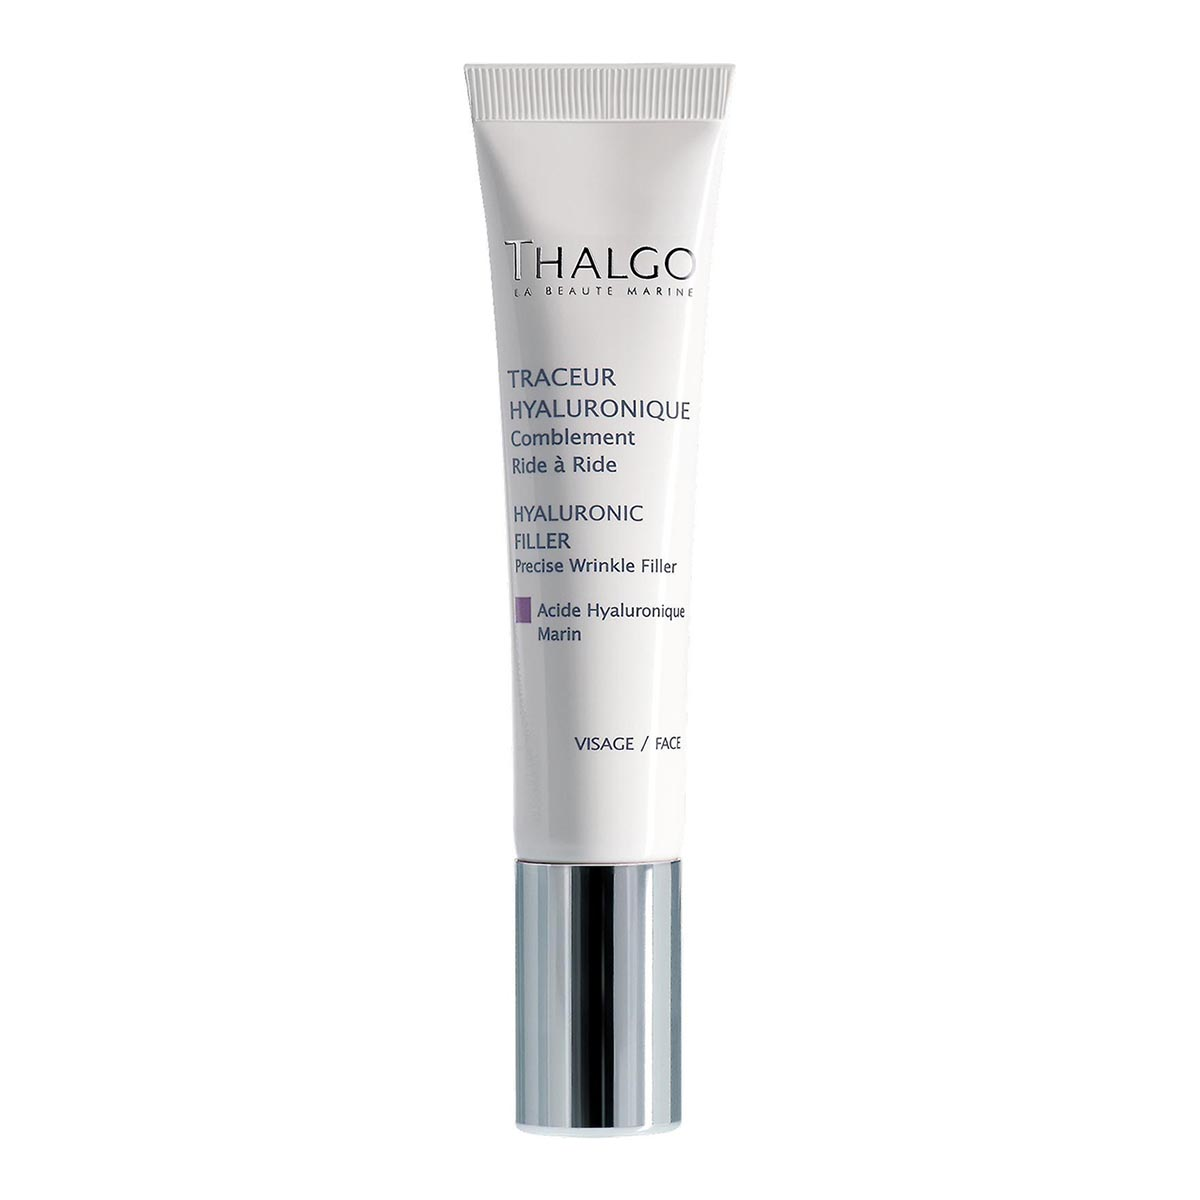 Thalgo traceur hyaluronique 15ml